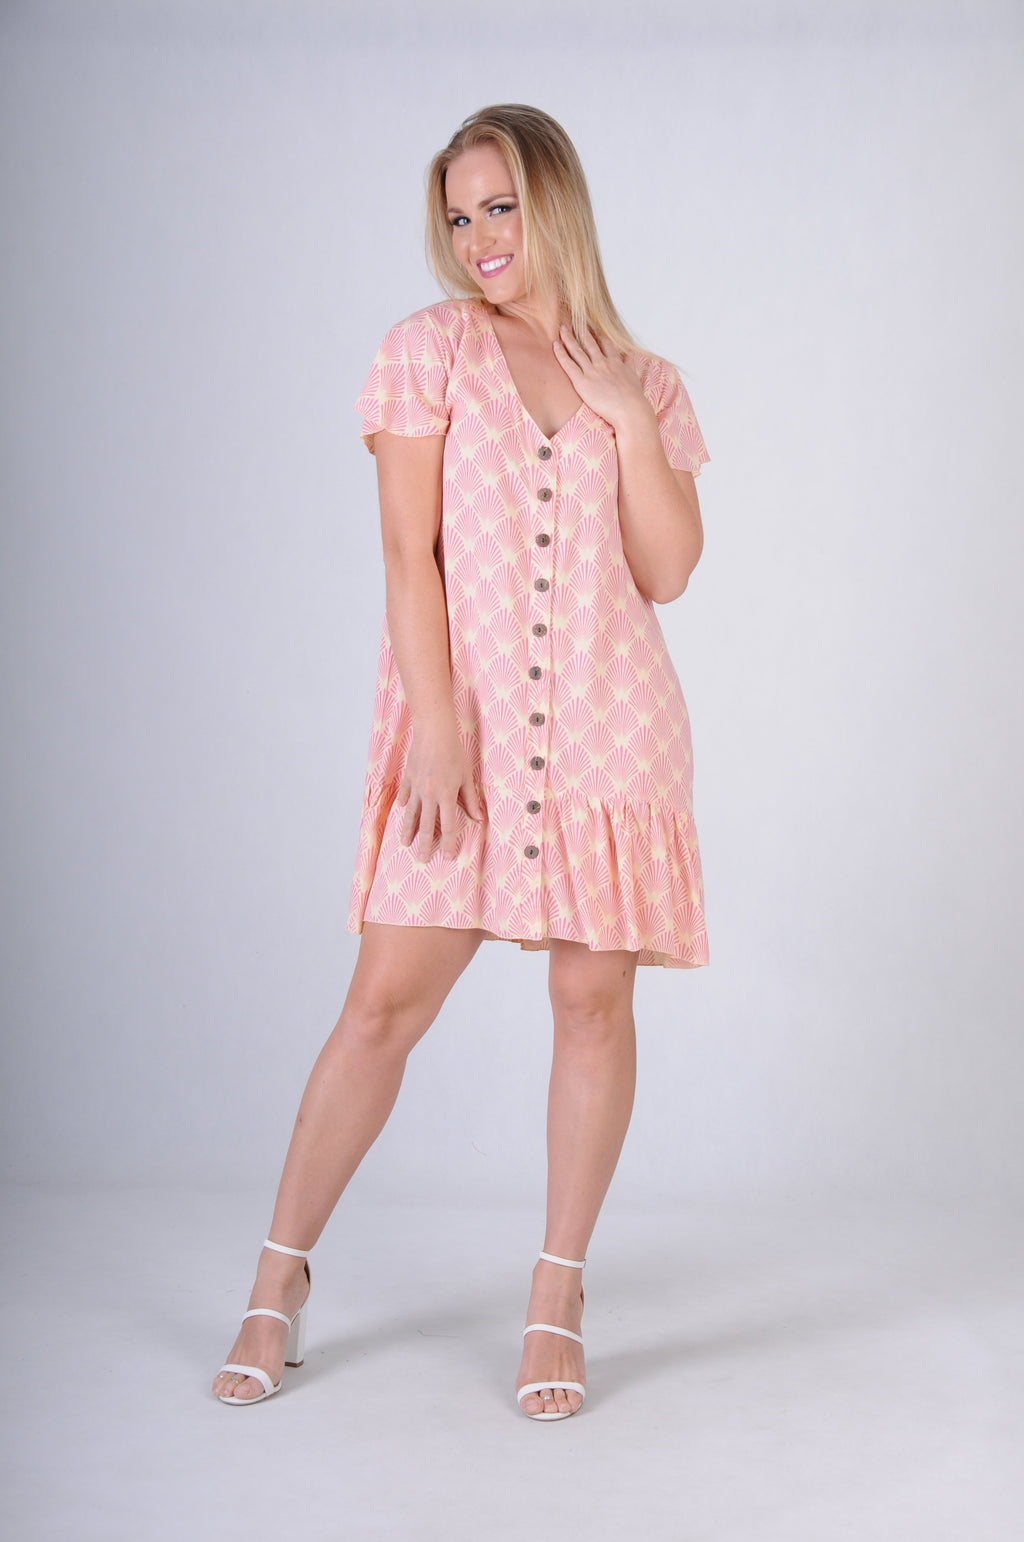 VGLD219 - CAP SLEEVE BUTTON DRESS - FAN PINK